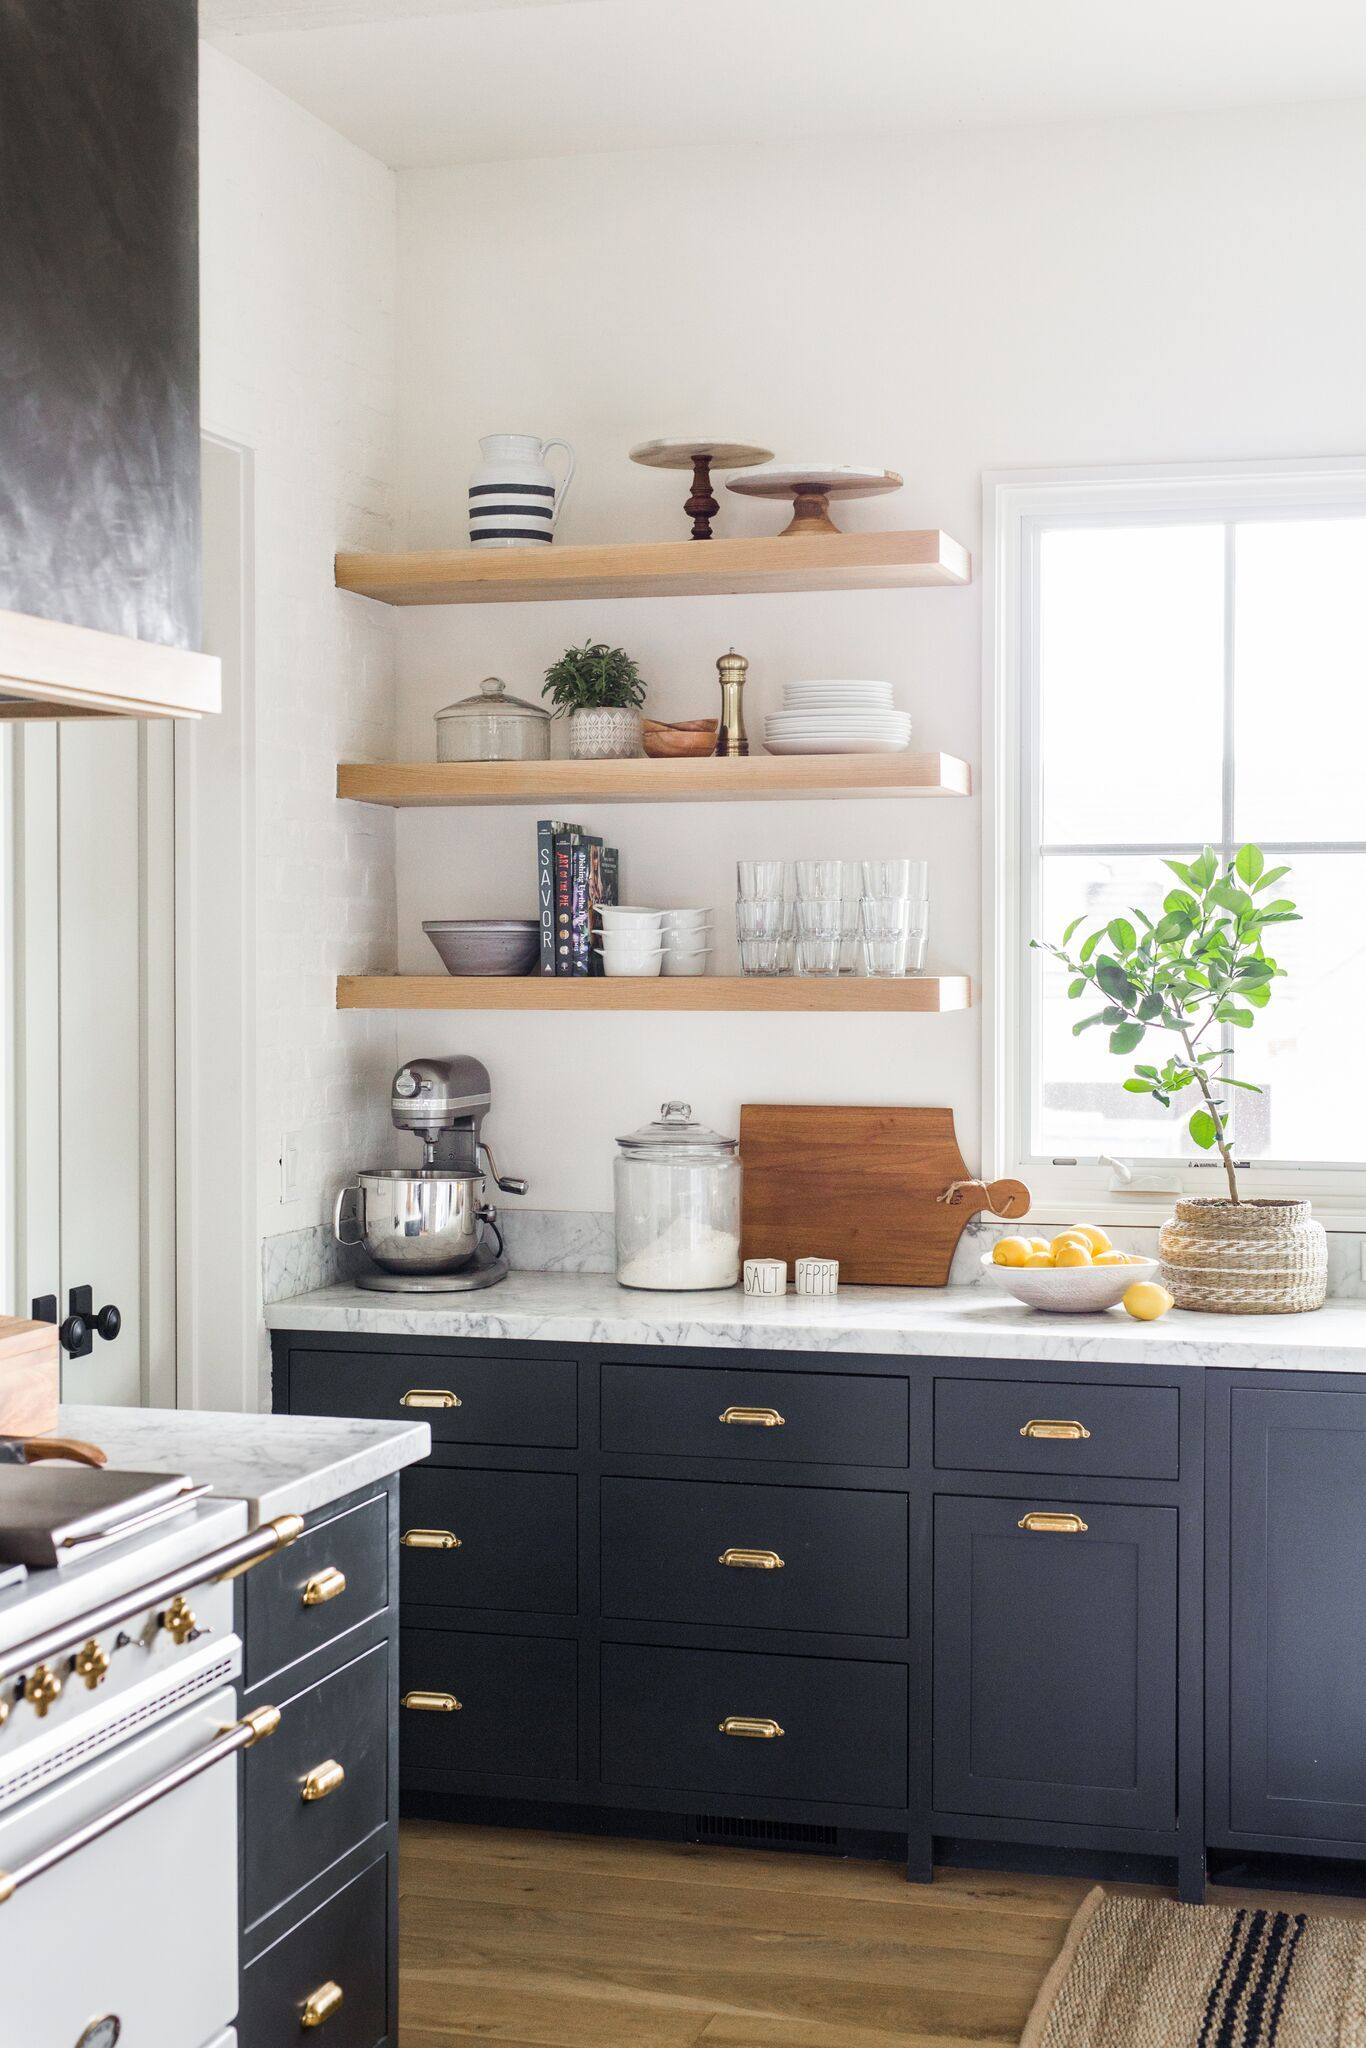 Our Tips For Kitchen Organization   Studio mcgee, Kitchens and Open ...